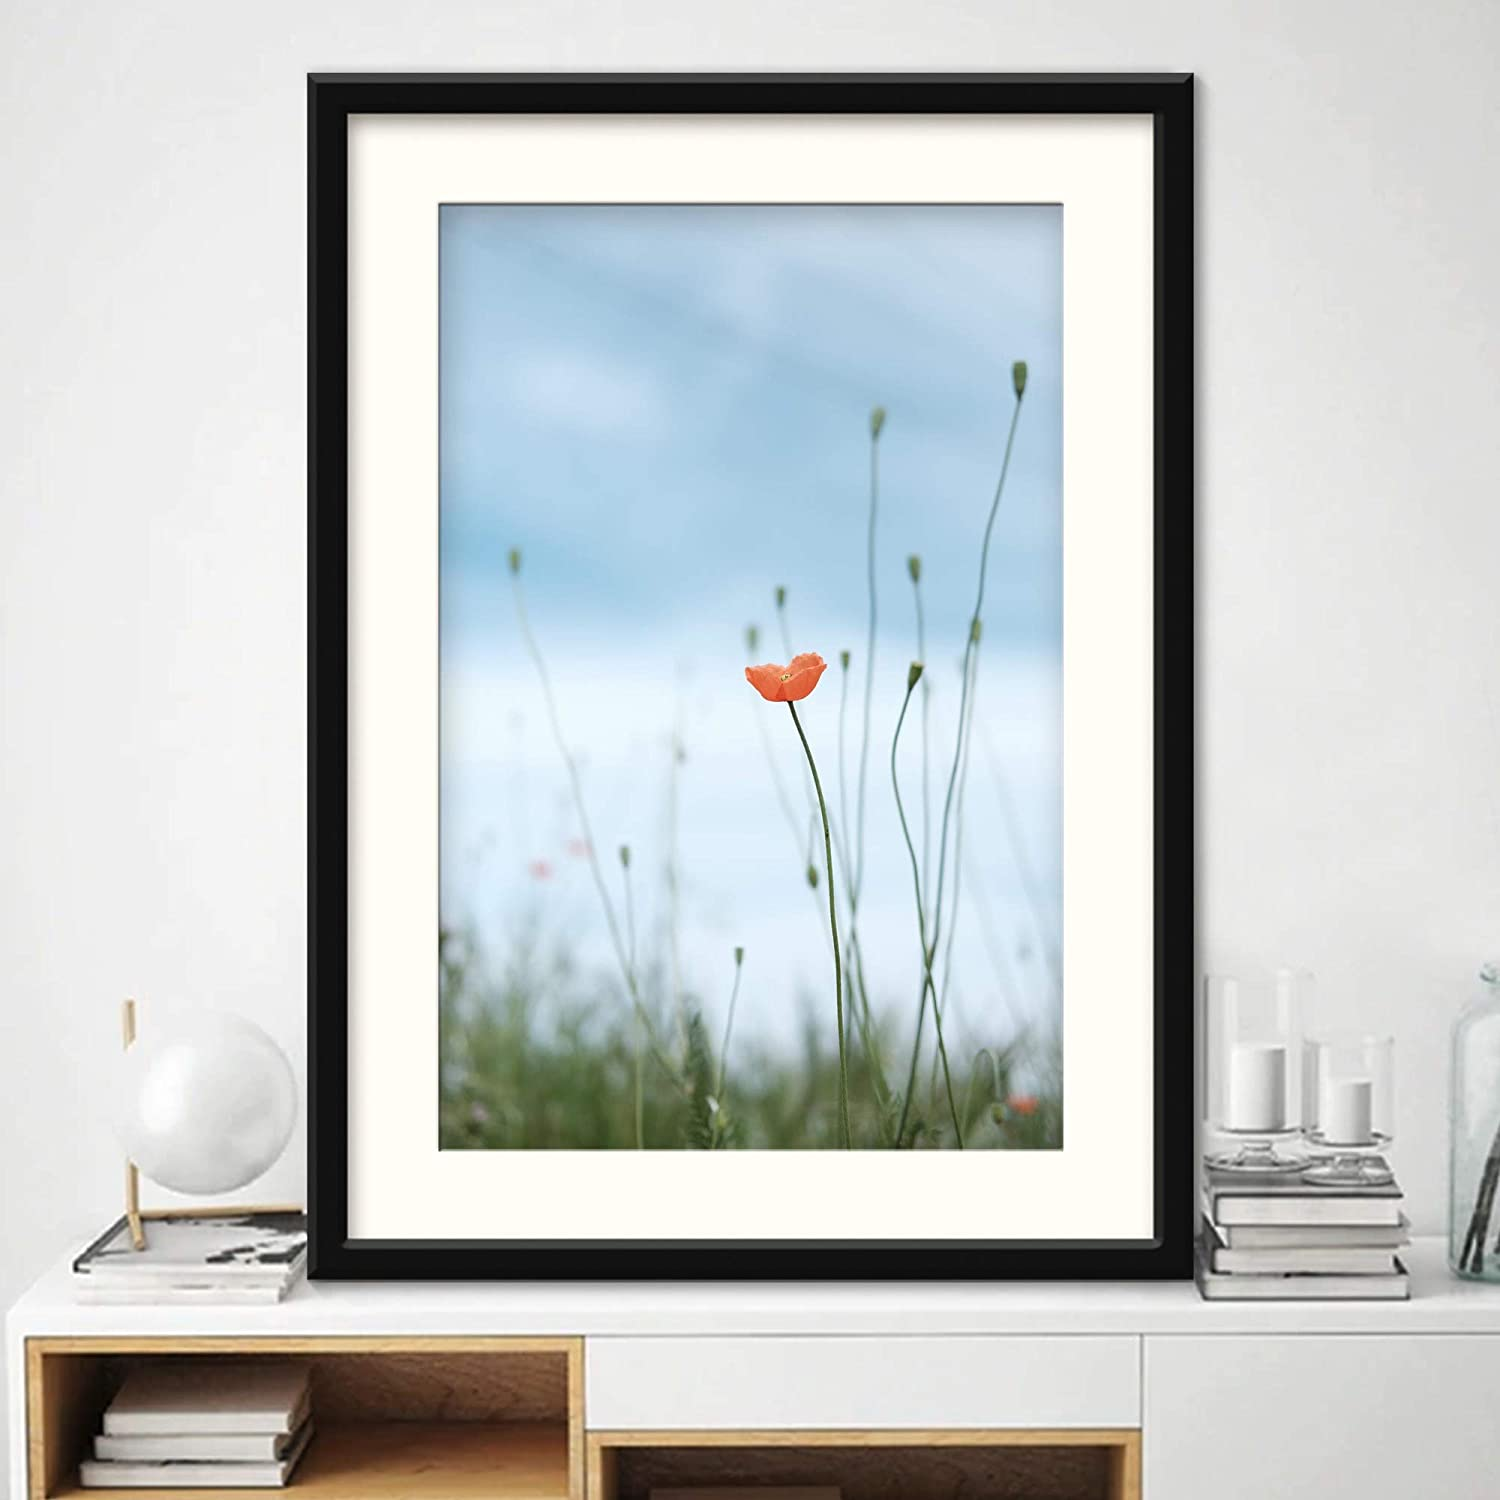 H5print Framed Canvas Wall Art Lone Flower in Field Bohemian Colorful Floral Group Multicolor Photography Artwork Black Frame - 23x31 inches